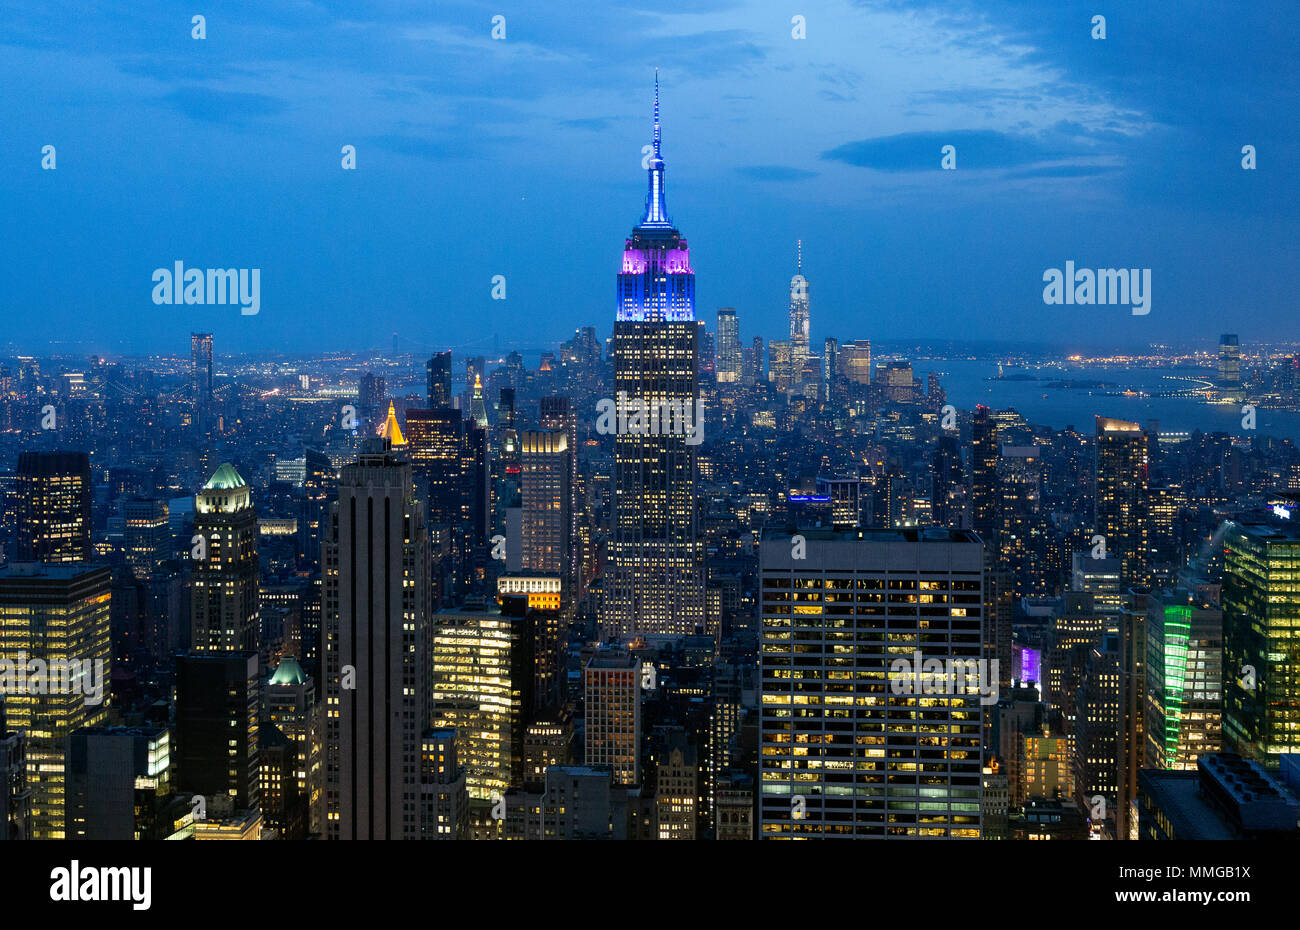 Empire State Building and New York skyline at dusk, seen from the Top of the Rock viewing platform, Manhattan, New York city, United States of America Stock Photo